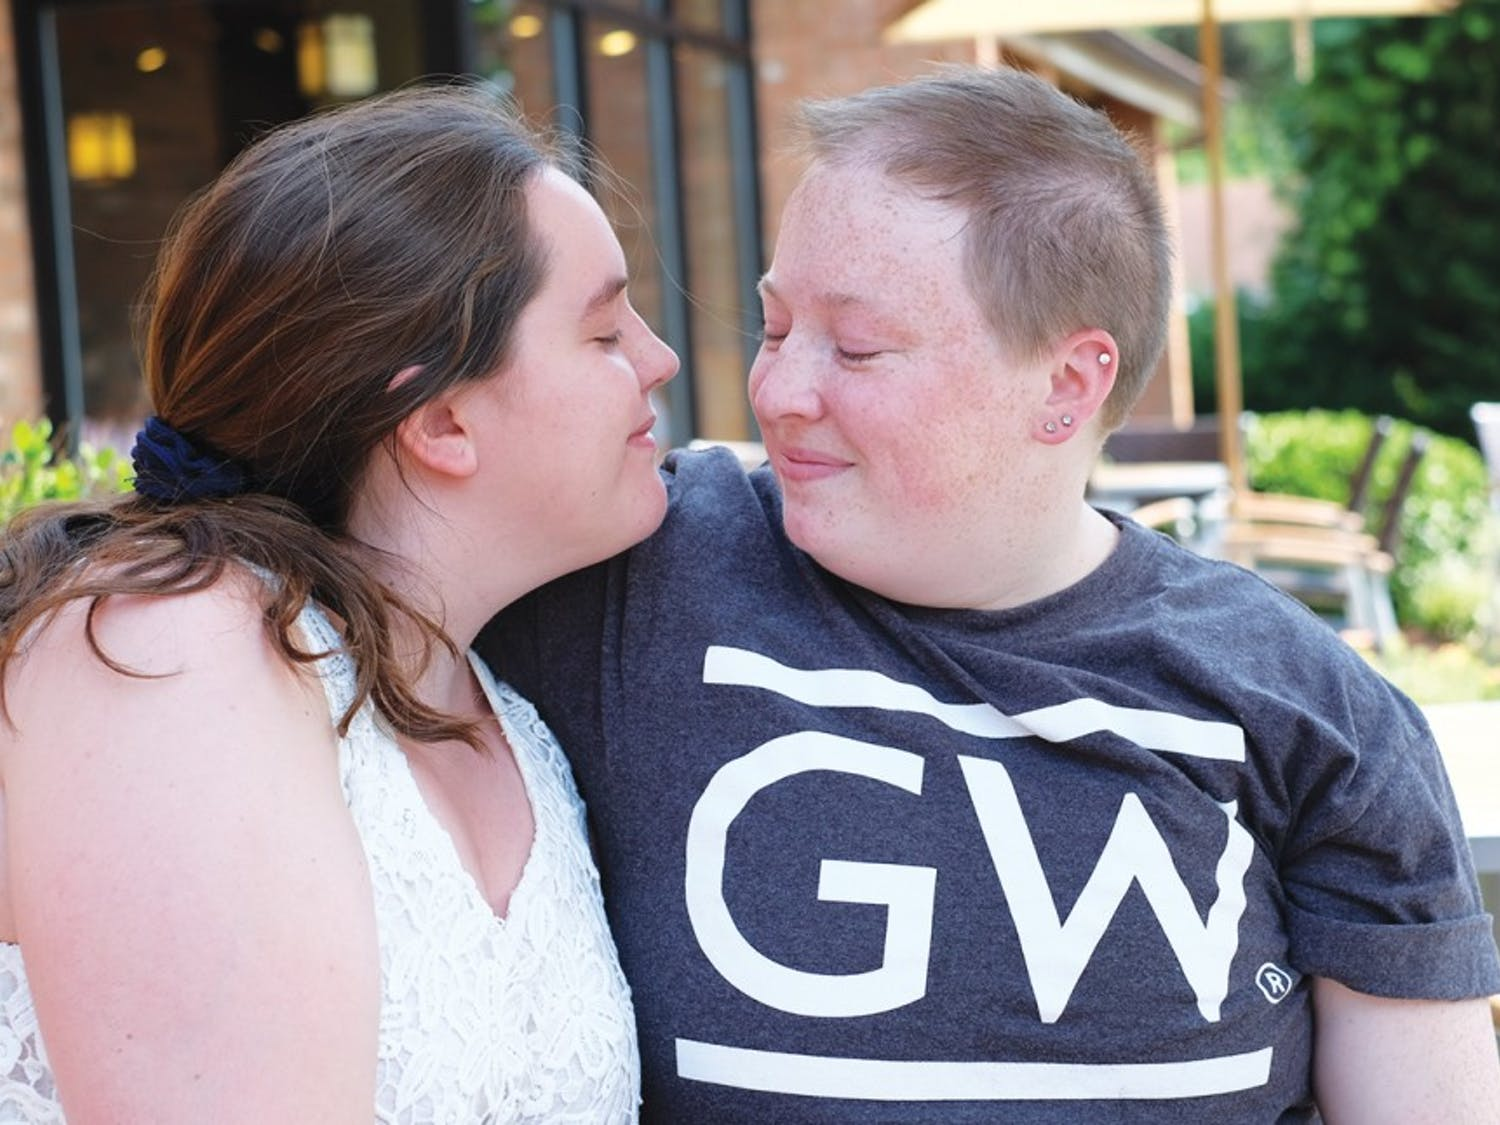 Danielle Martin (left) and Katy Folk pose in front of Caribou Coffee on June 30. Martin and Folk plan to get married in North Carolina in May 2016.